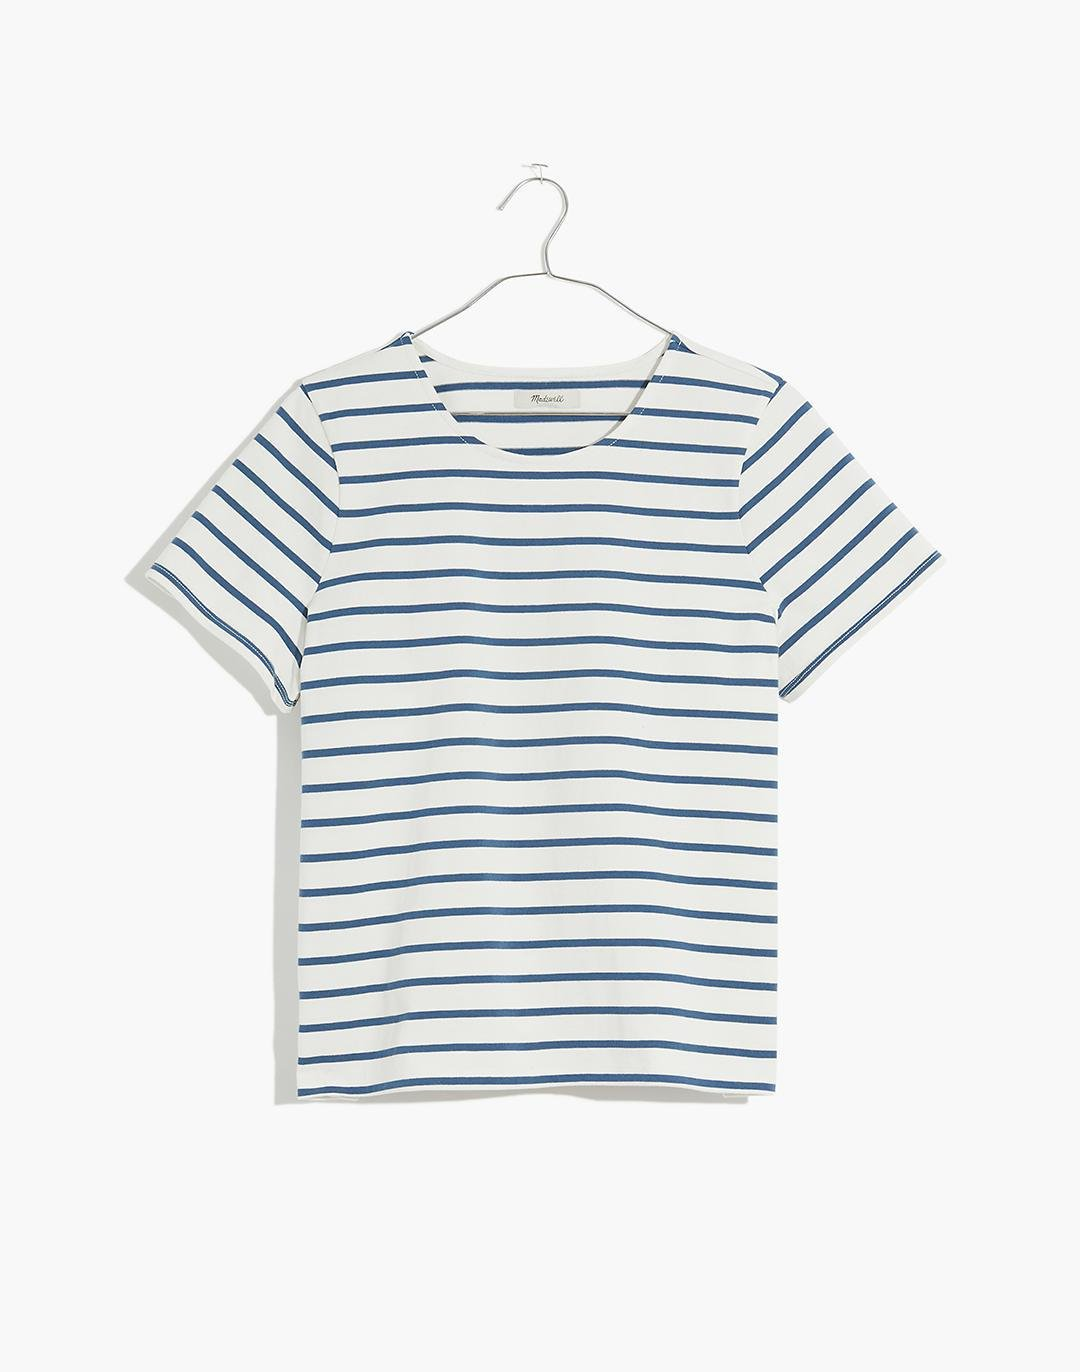 Luxe Boxy-Crop Tee in Atmore Stripe 4